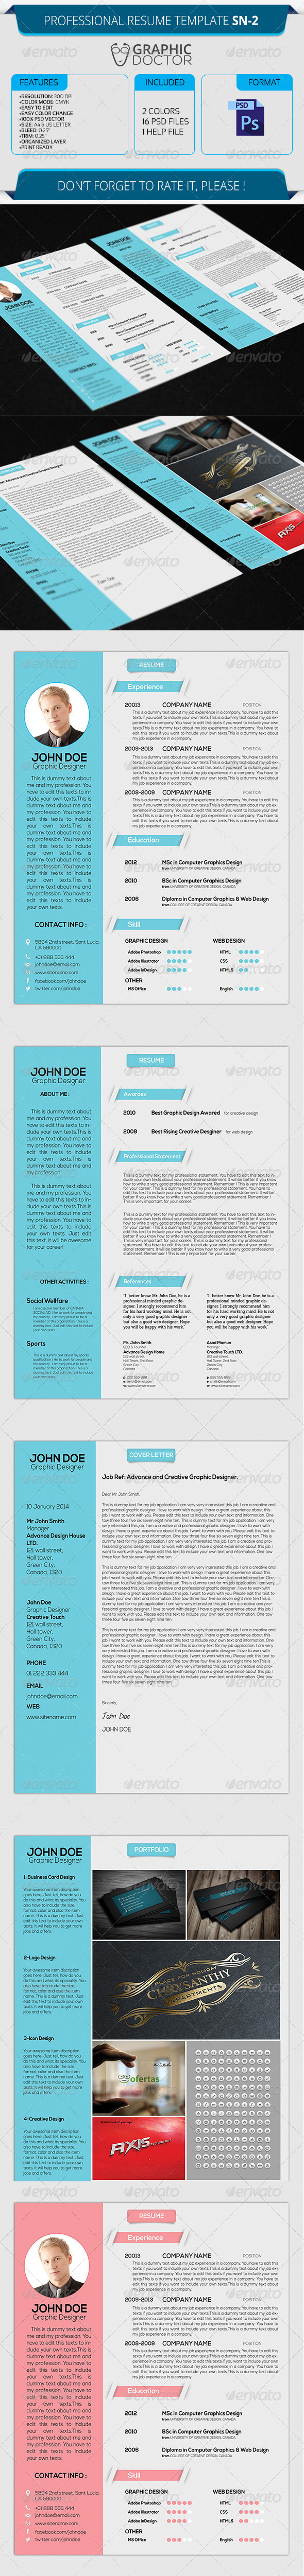 Professional Resume Template SN-2 - Resumes Stationery